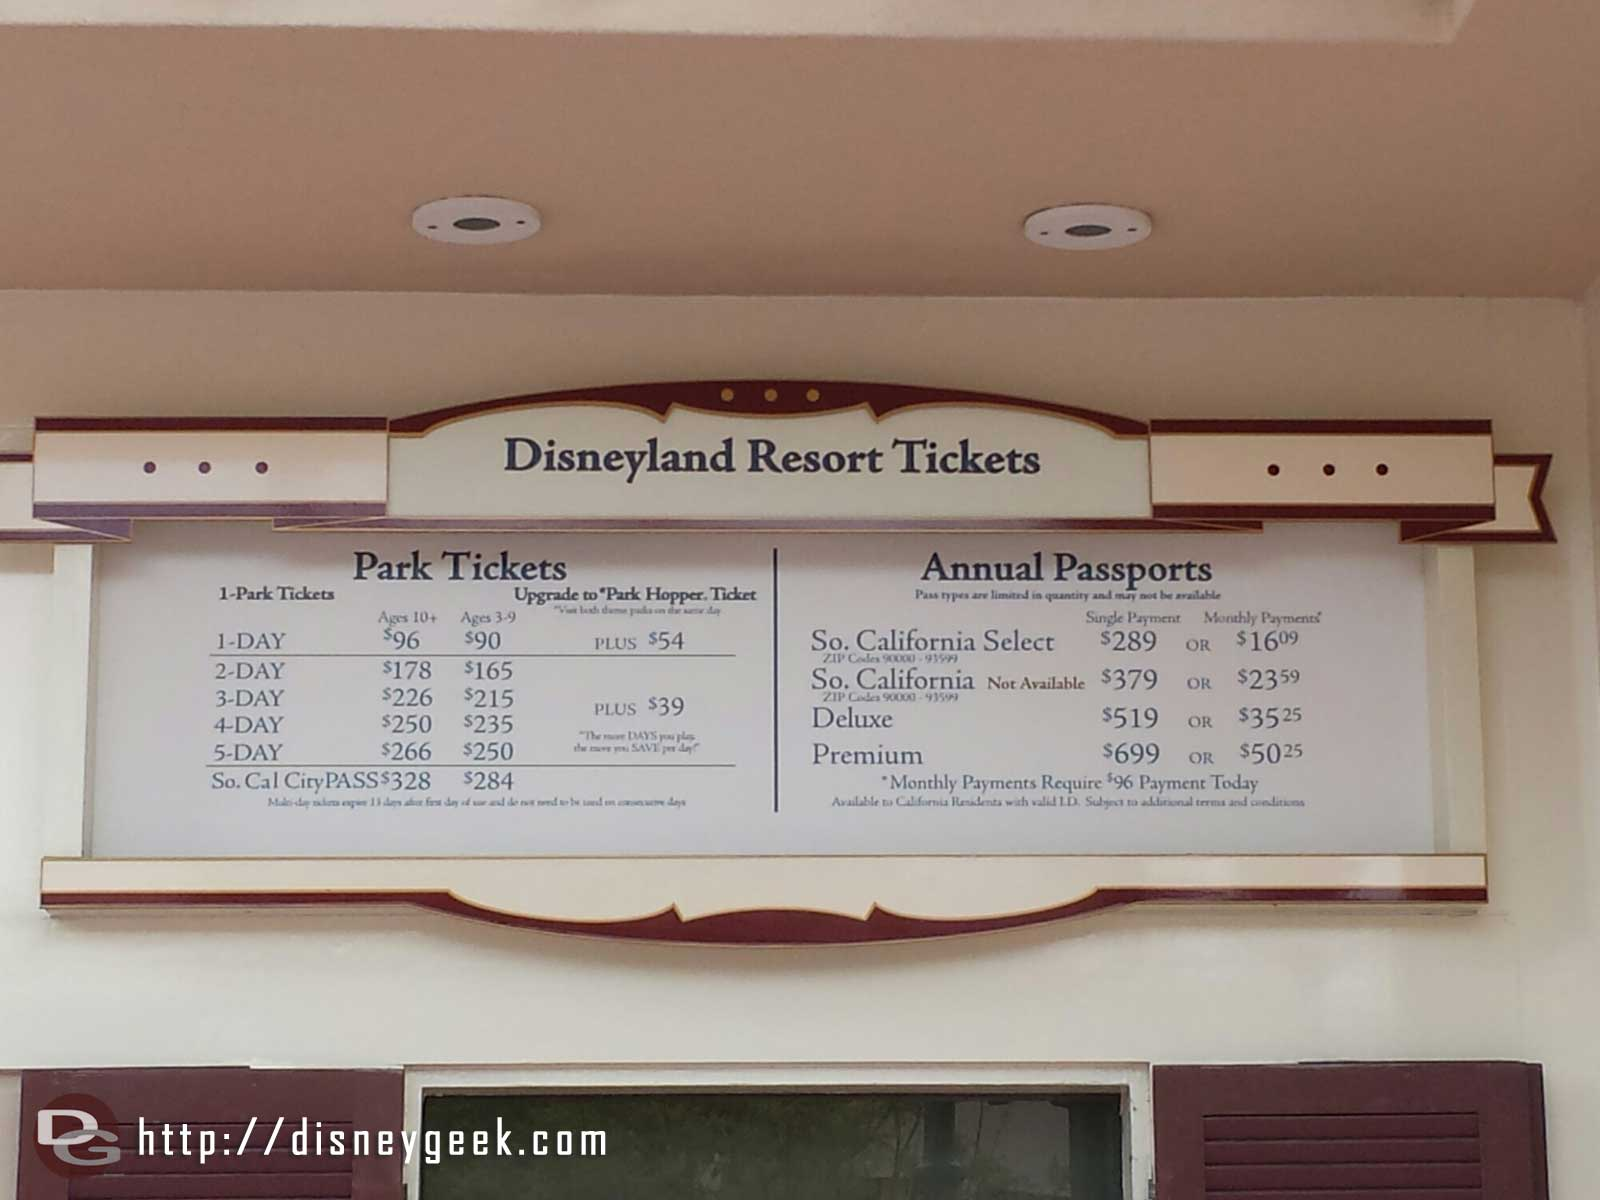 Since my last trip admission has gone up, current #Disneyland Resort tickets